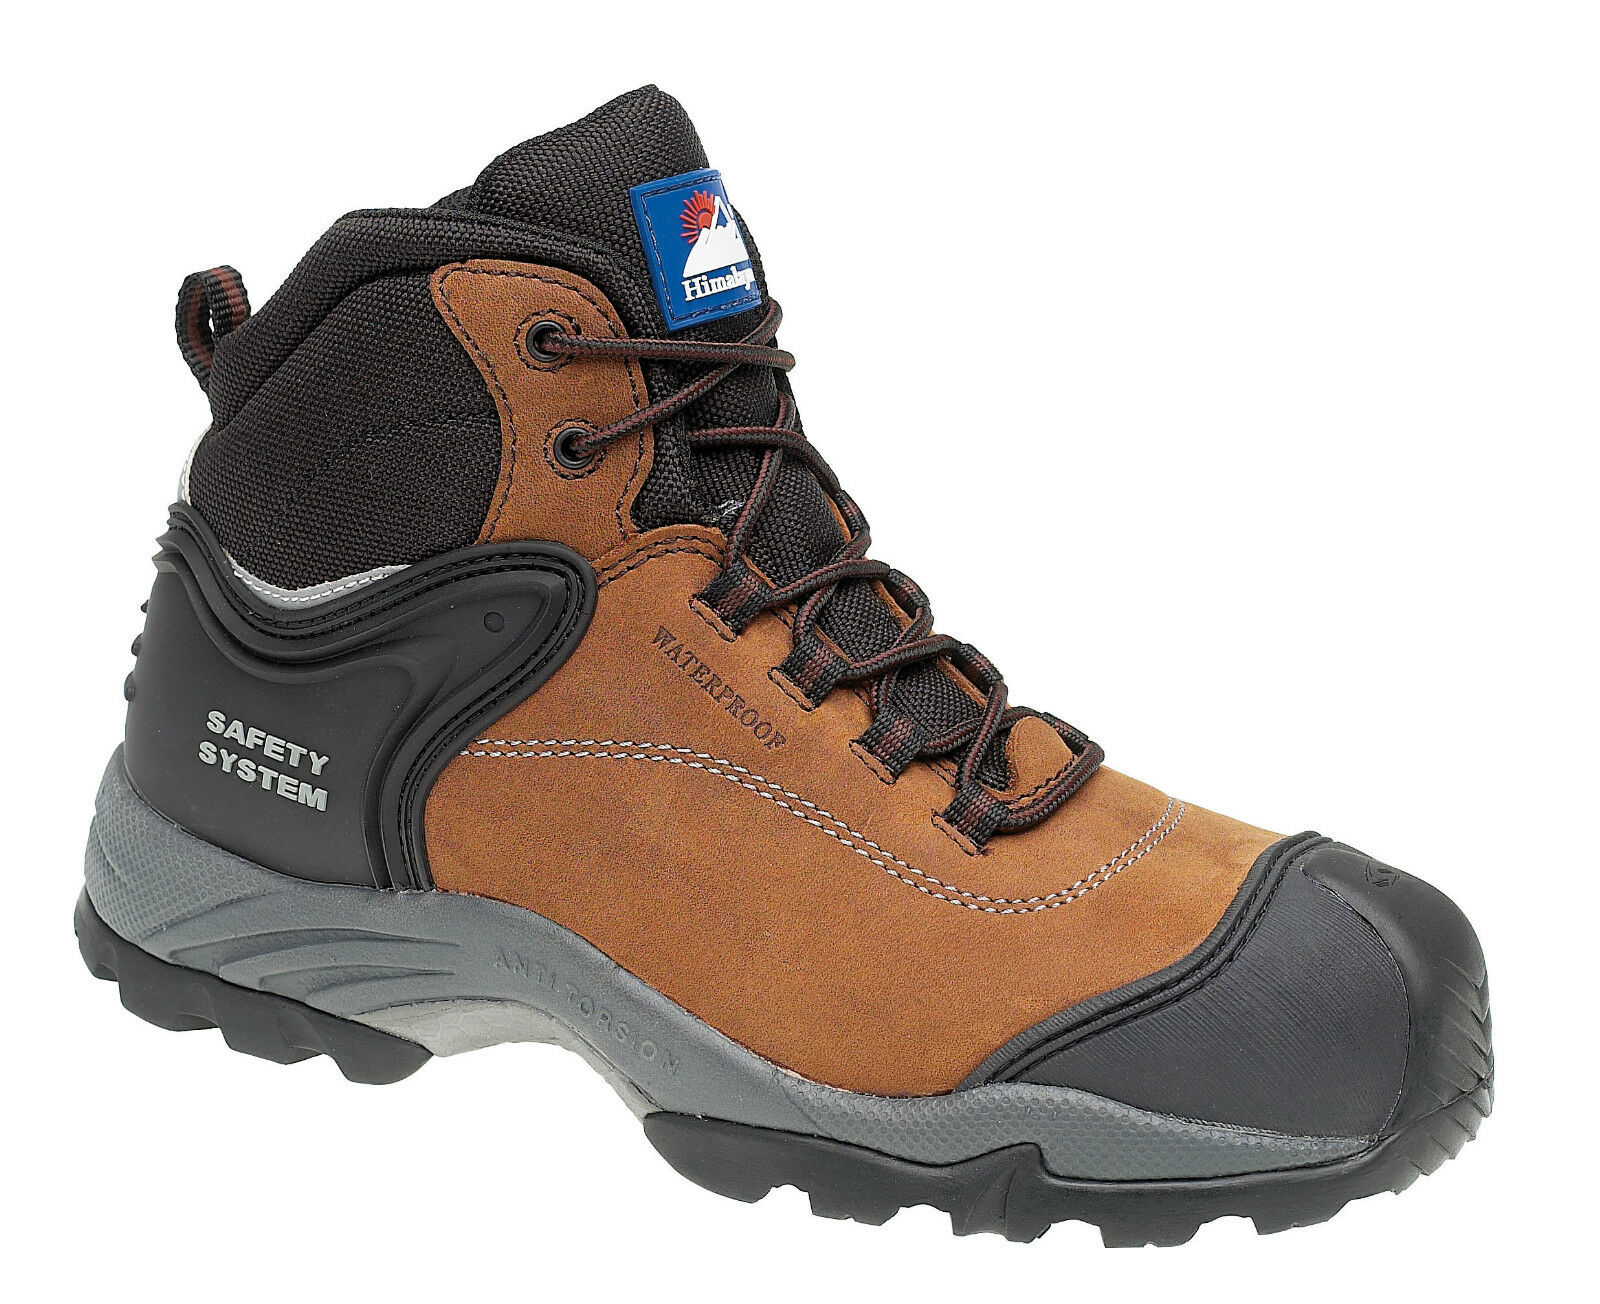 Himalayan 4104 S3 SRC braun Composite Toe Cap Metal Free Waterproof Safety Stiefel